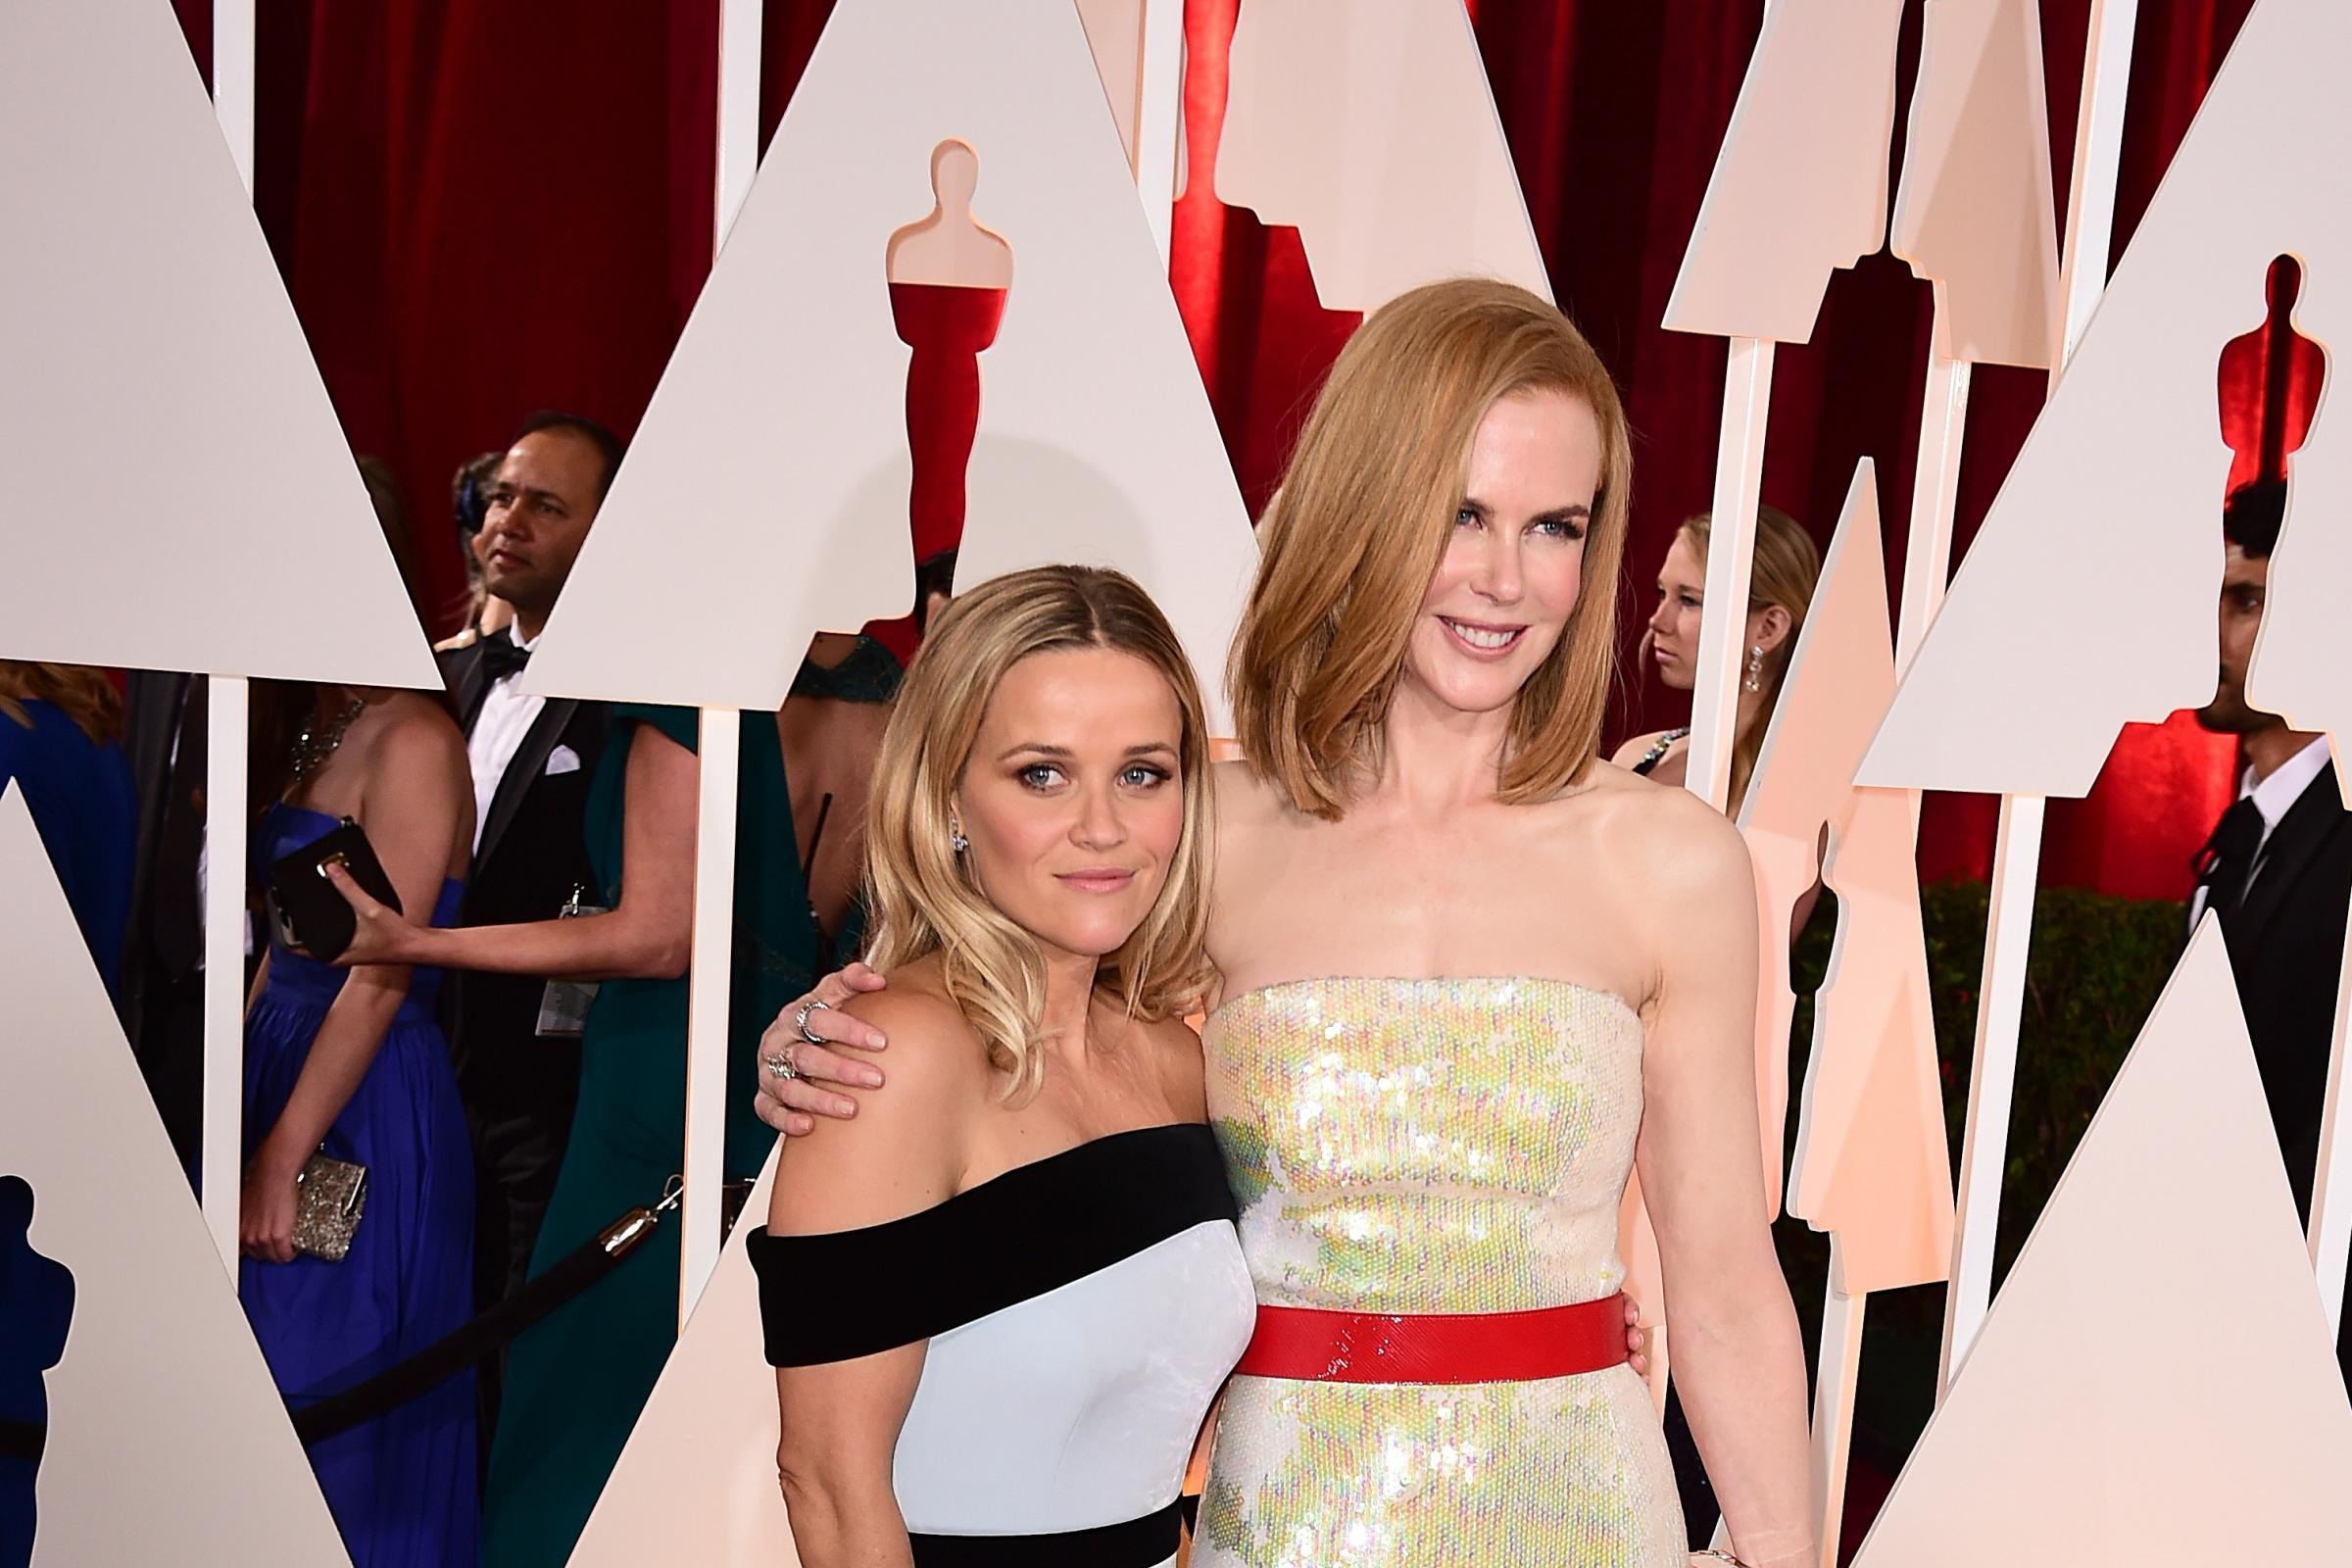 Reese Witherspoon and Nicole Kidman at the Oscars